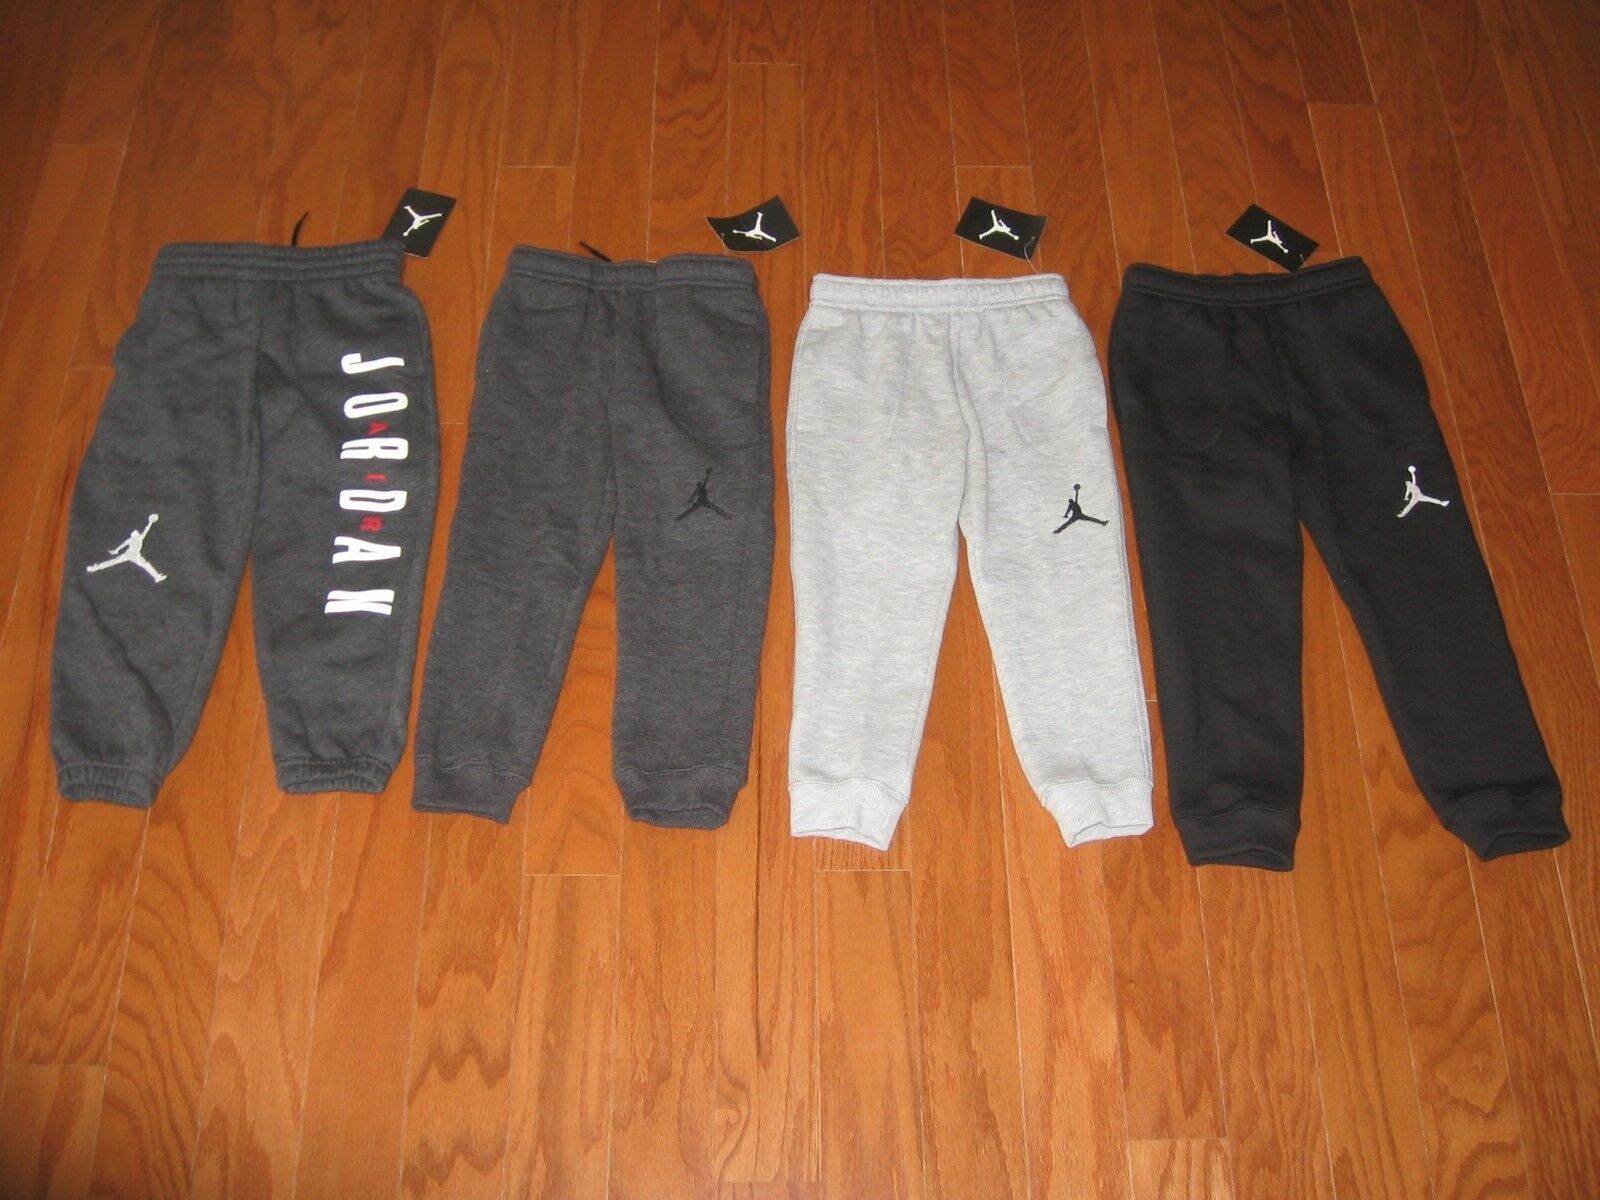 08a9ff64ffa0 kids jordan clothing champs sports  nike air jordan boys athletic fleece  jogger pants size 4 5 6 7